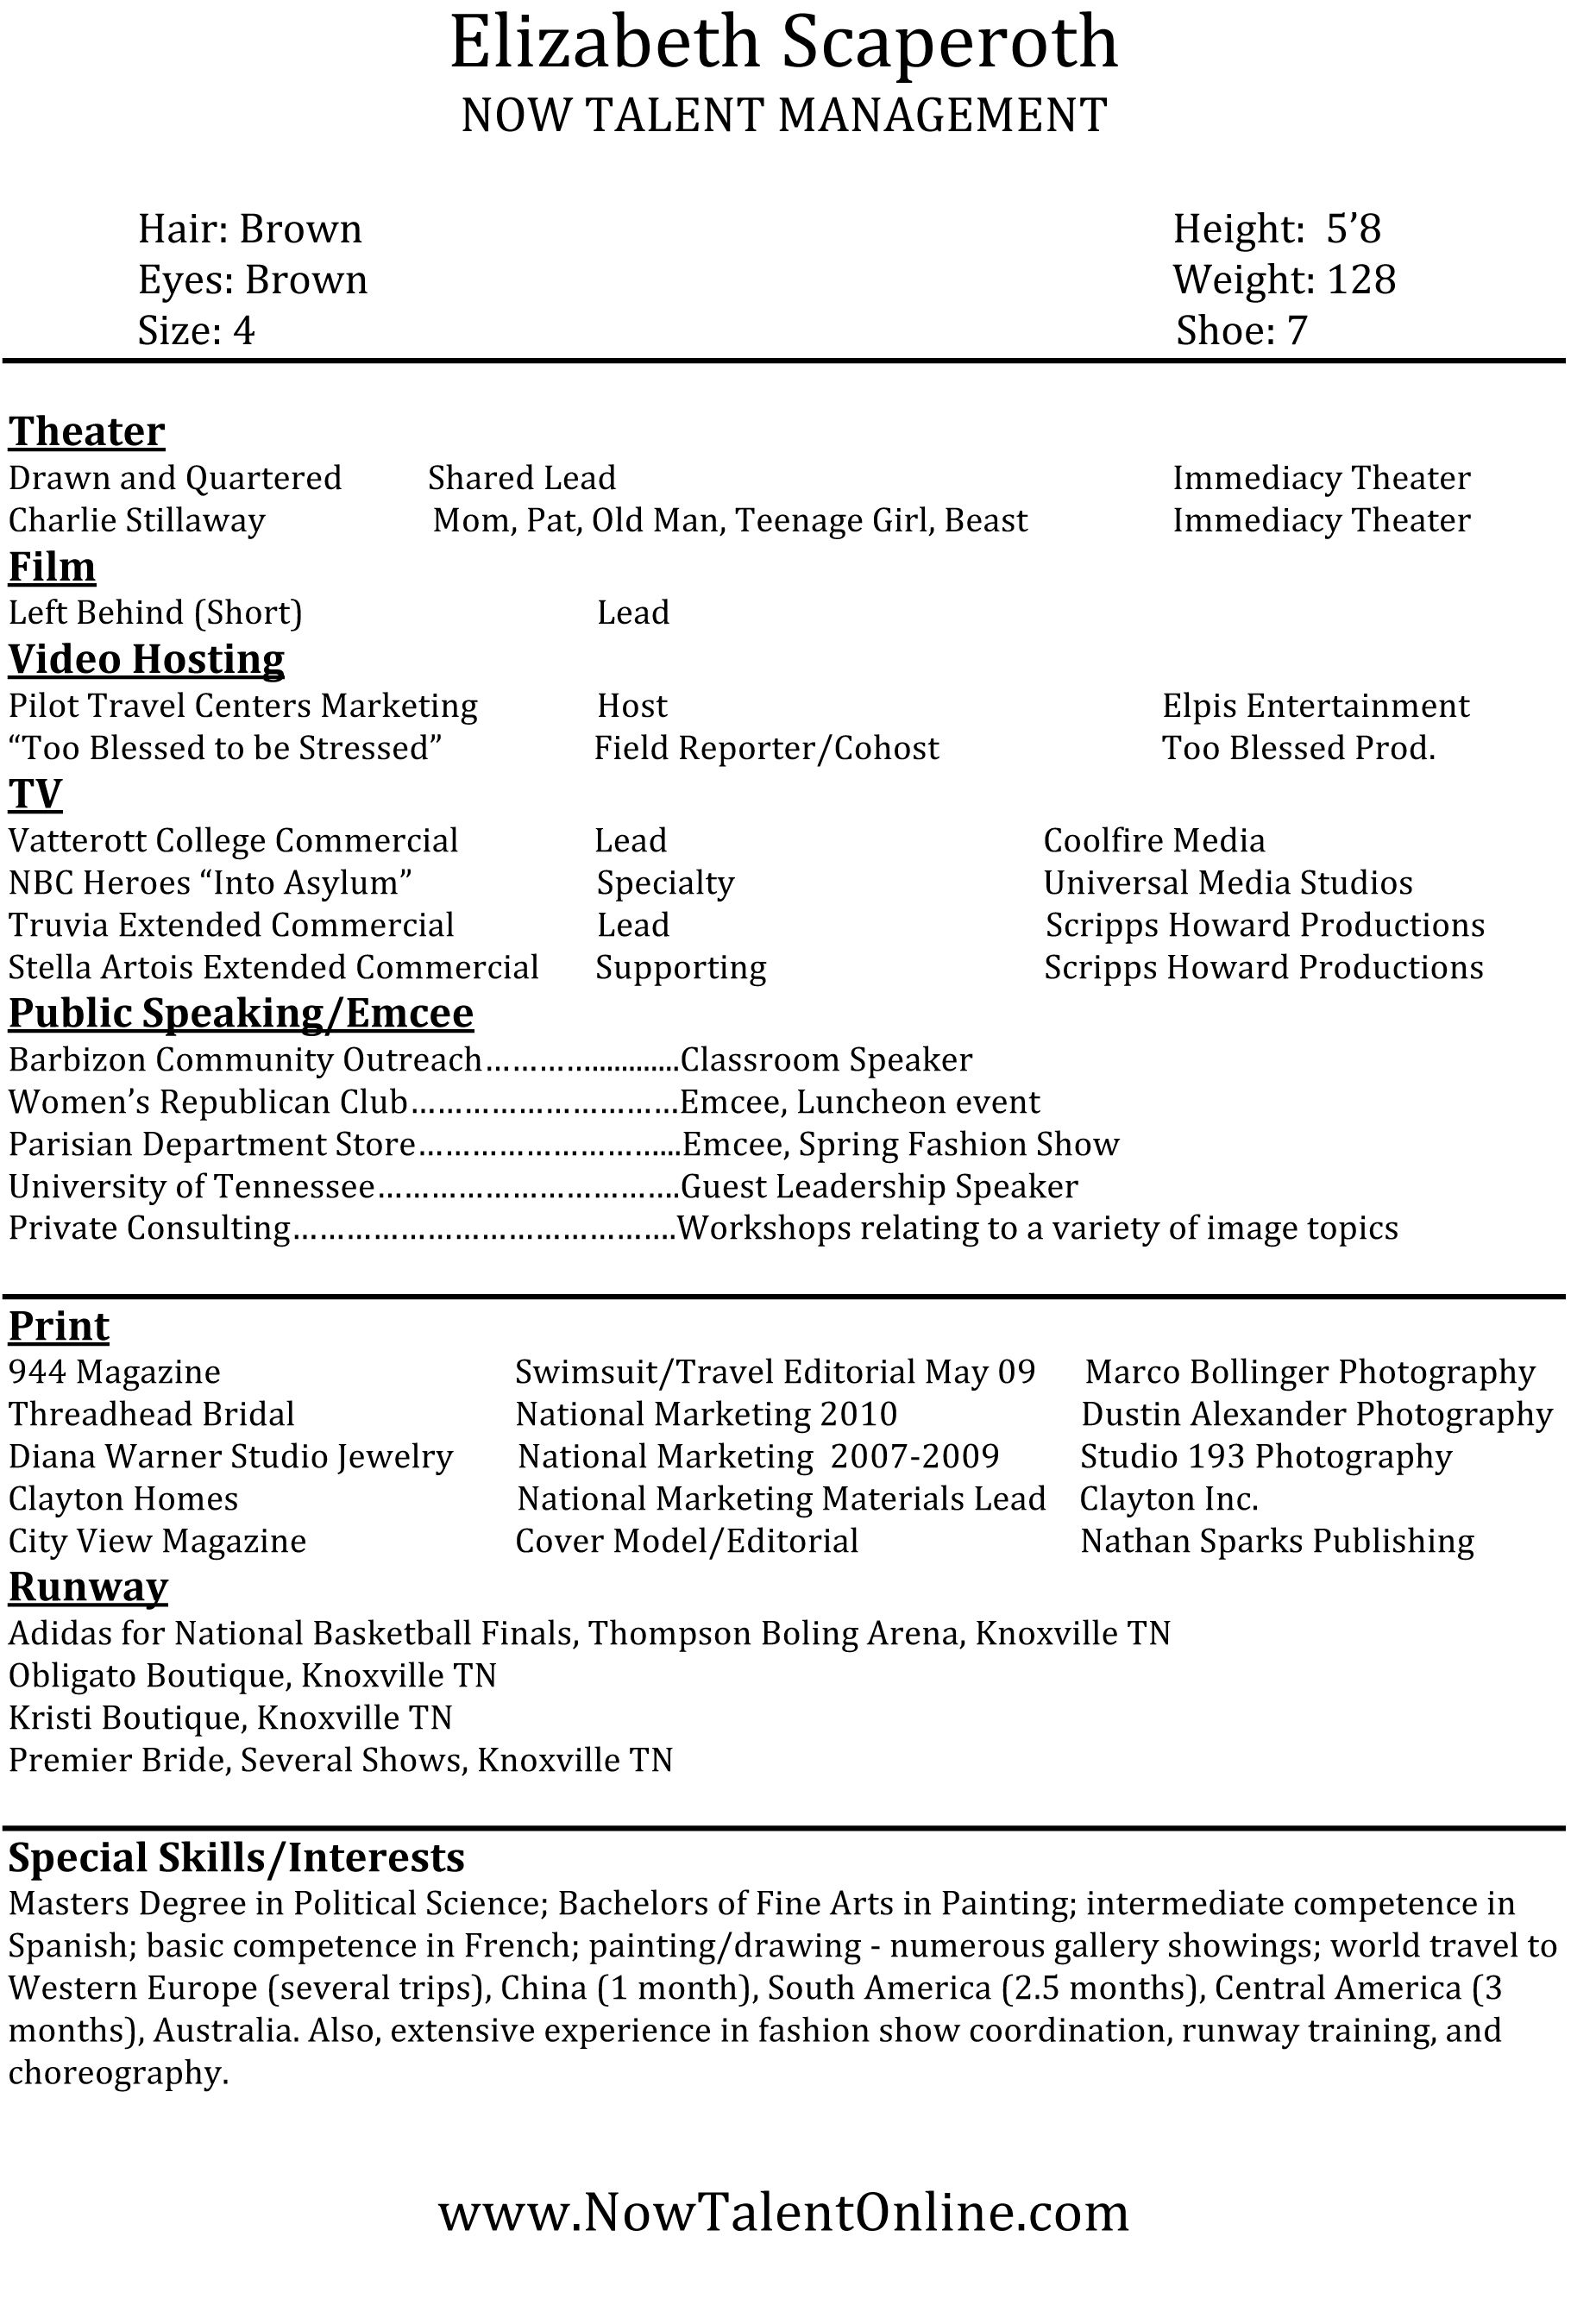 Sample Resume For Professional Acting Resumecareer